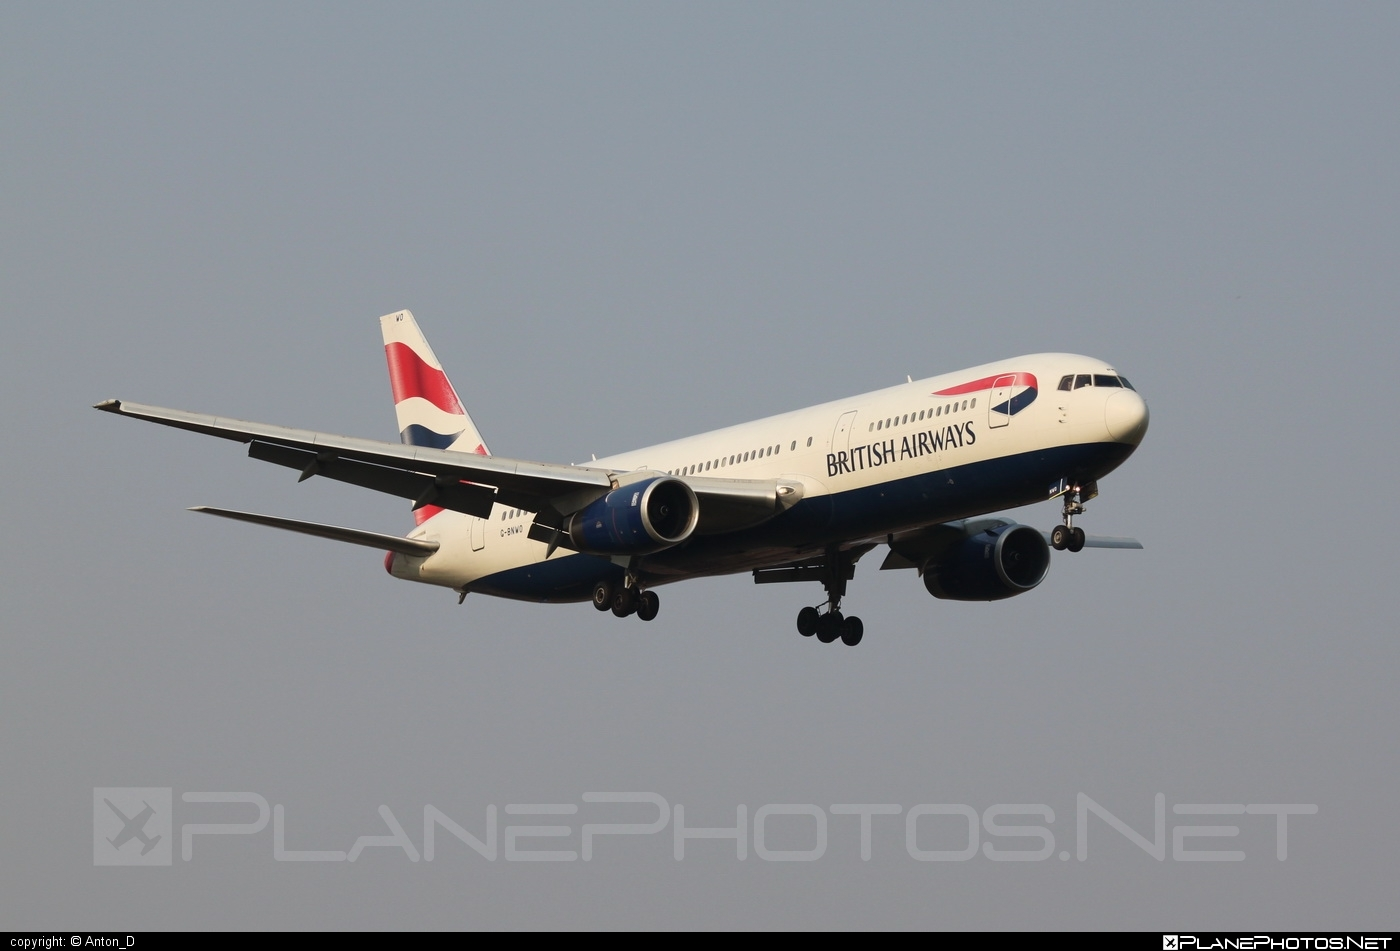 Boeing 767-300ER - G-BNWO operated by British Airways #b767 #b767er #boeing #boeing767 #britishairways